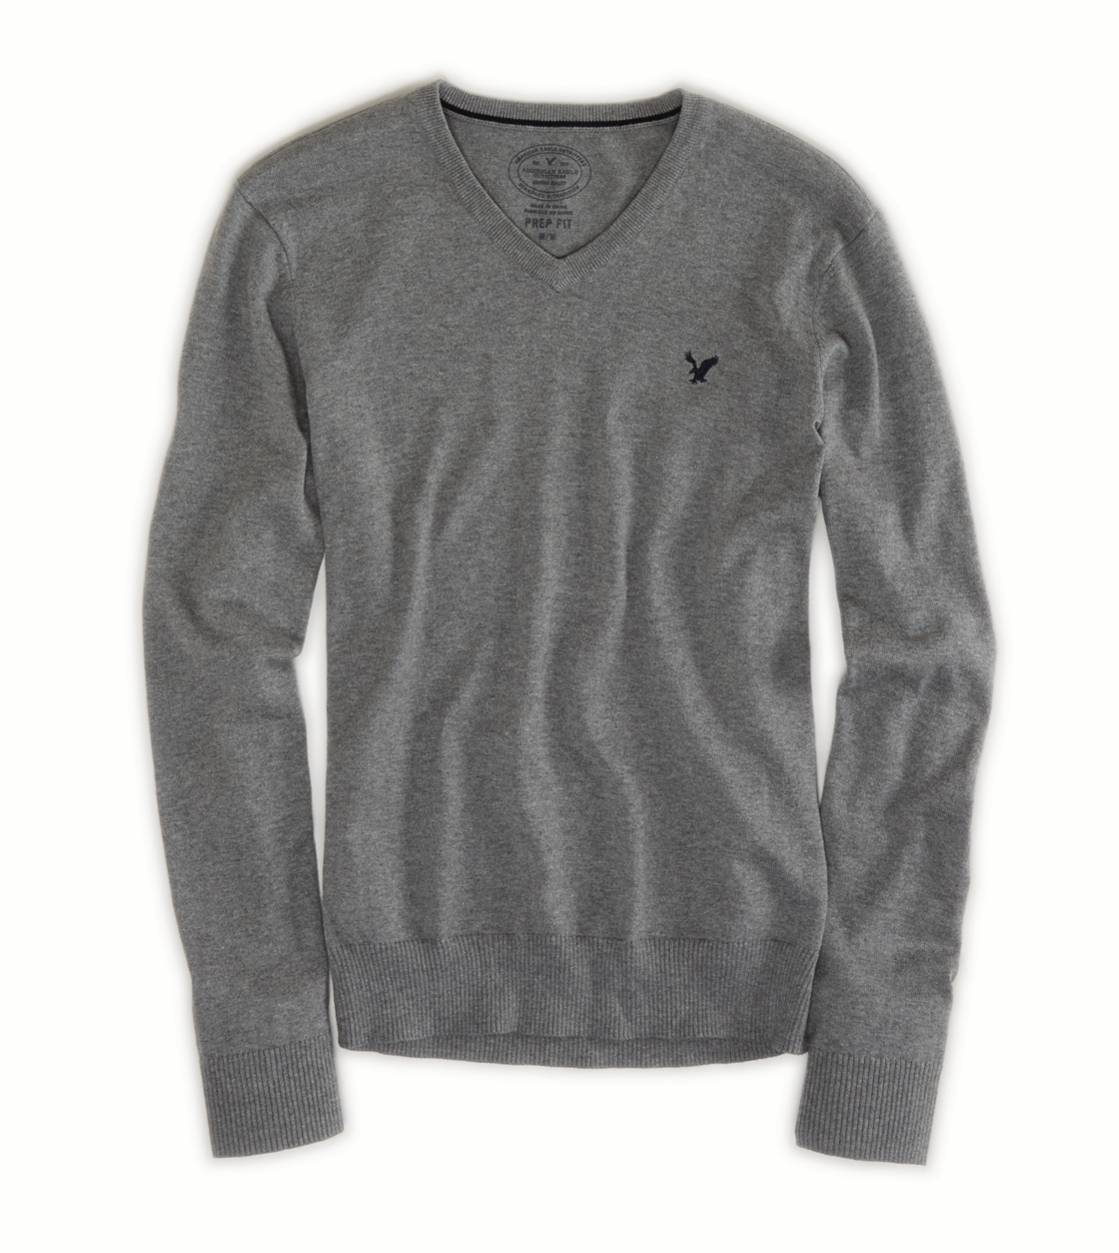 Light Heather Grey AEO Factory V-Neck Sweater